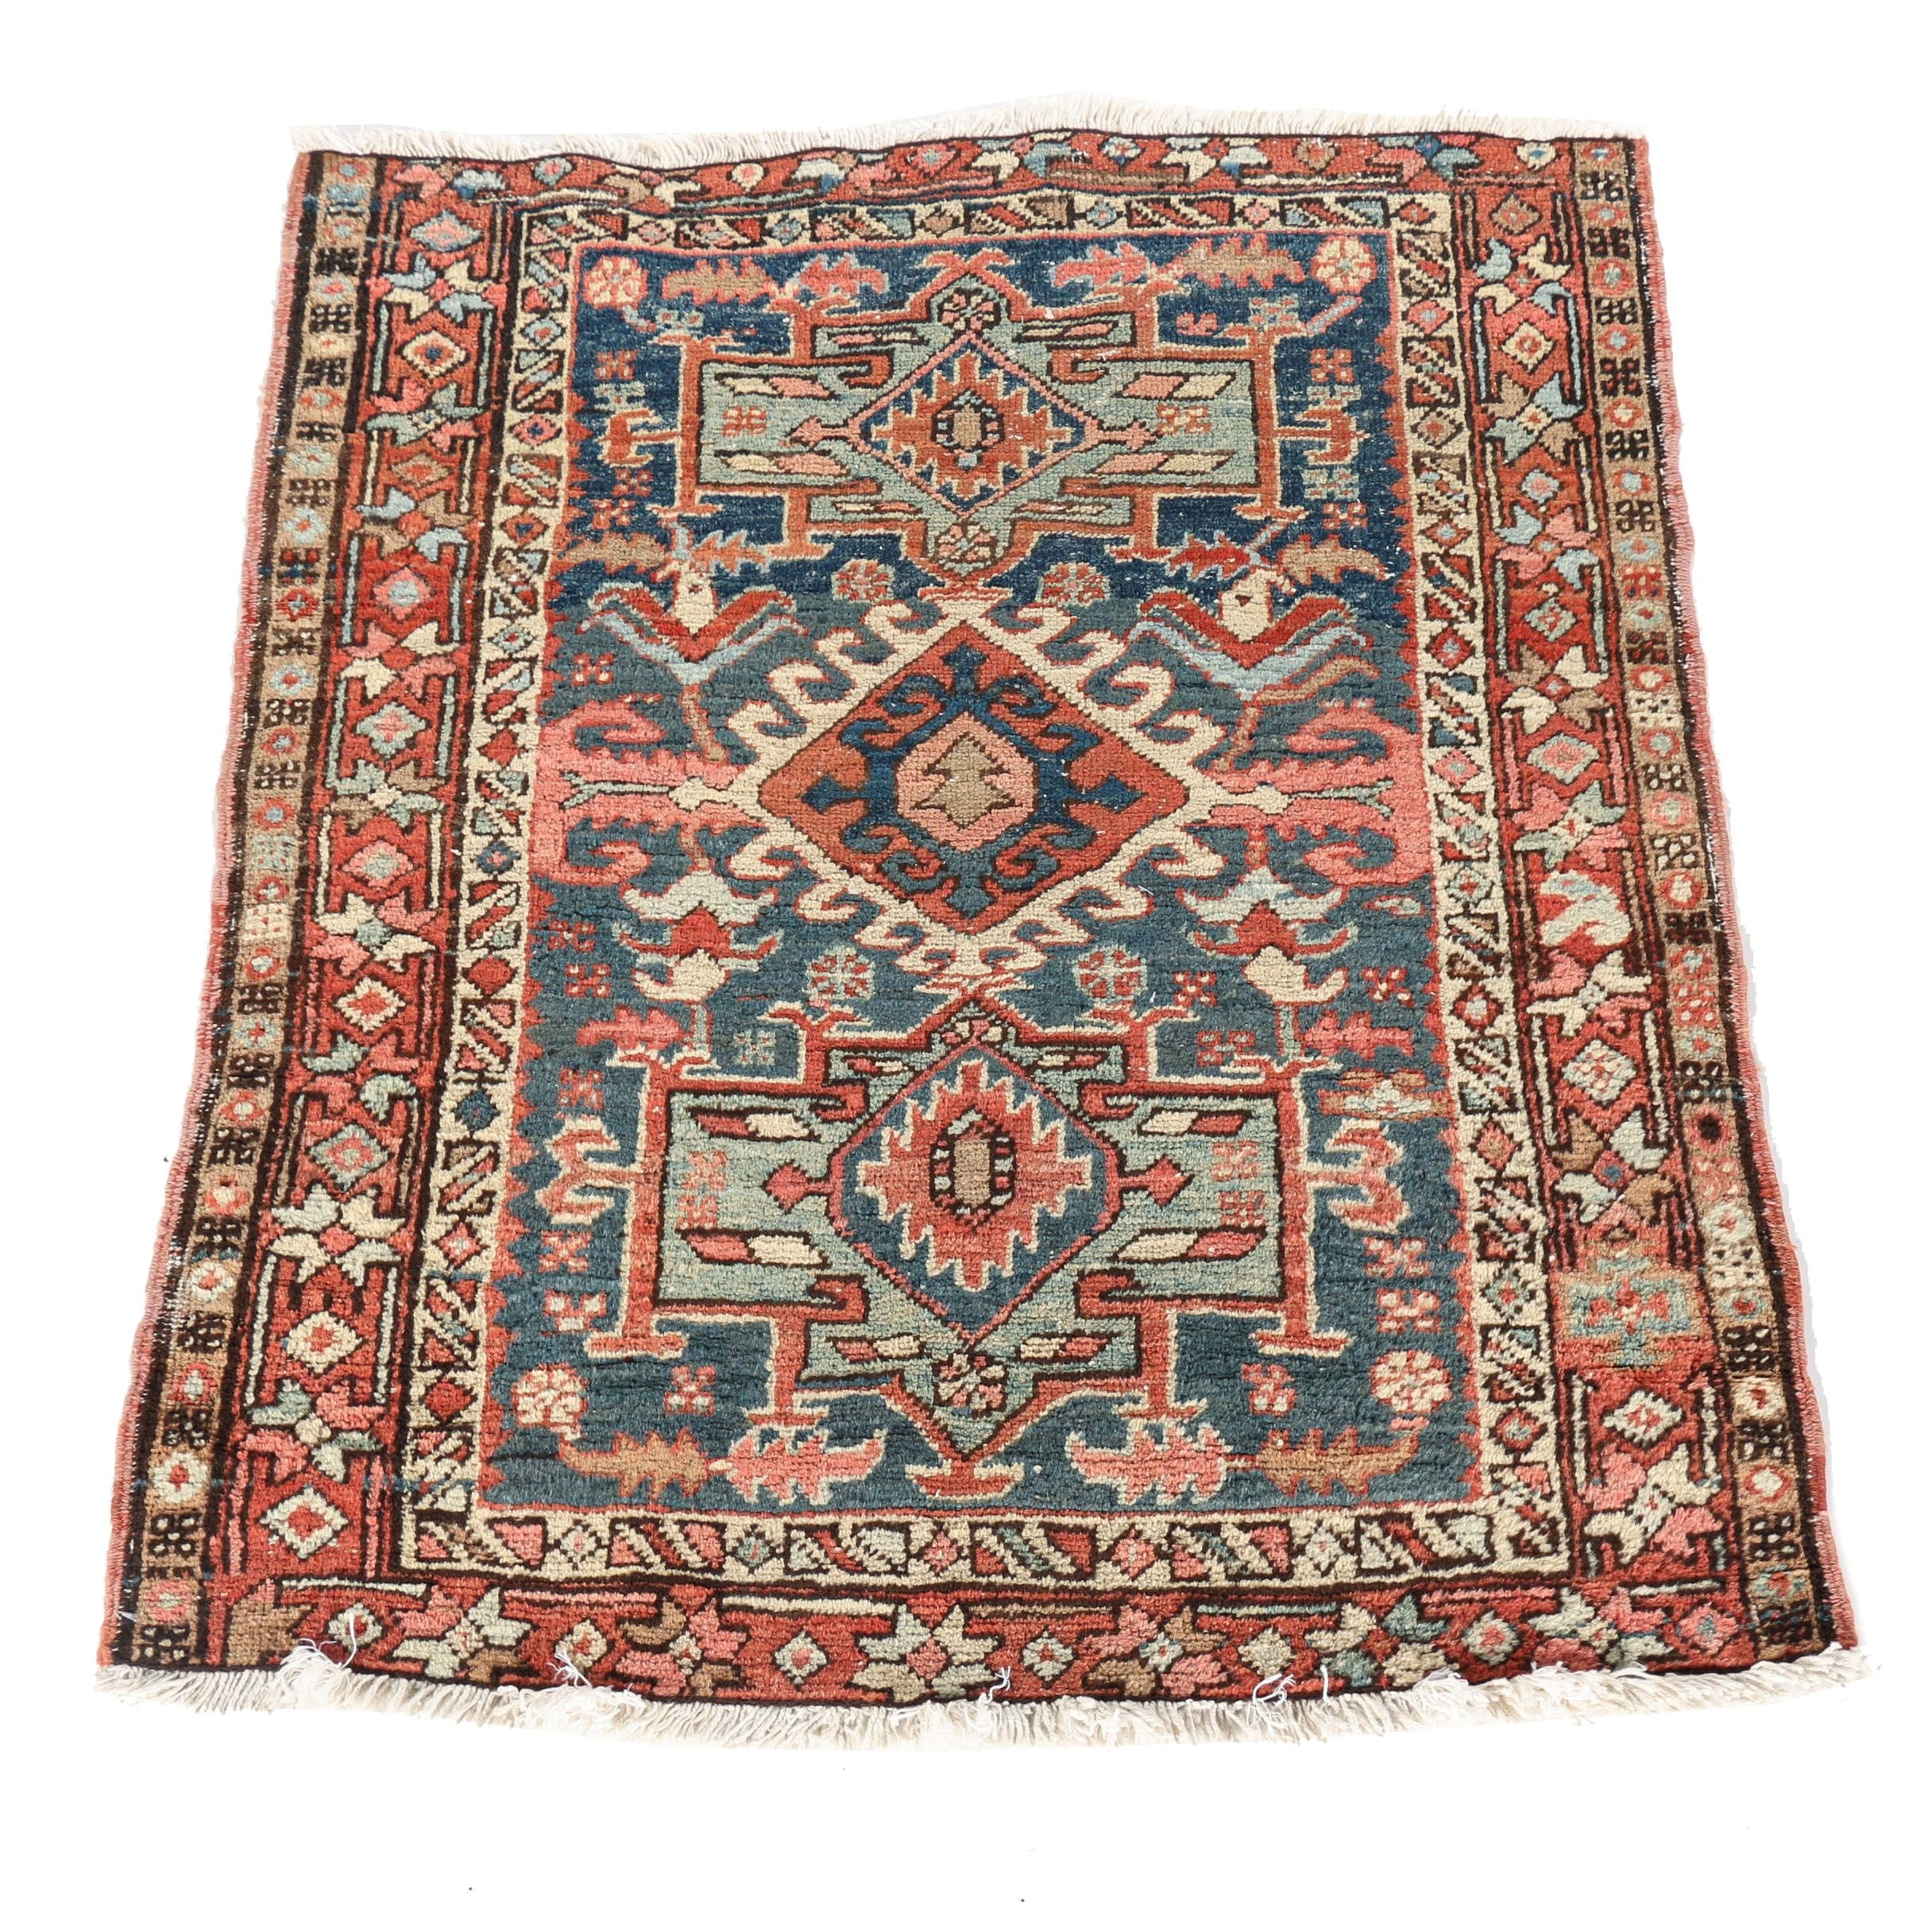 Semi-Antique Hand-Knotted Caucasian Accent Rug